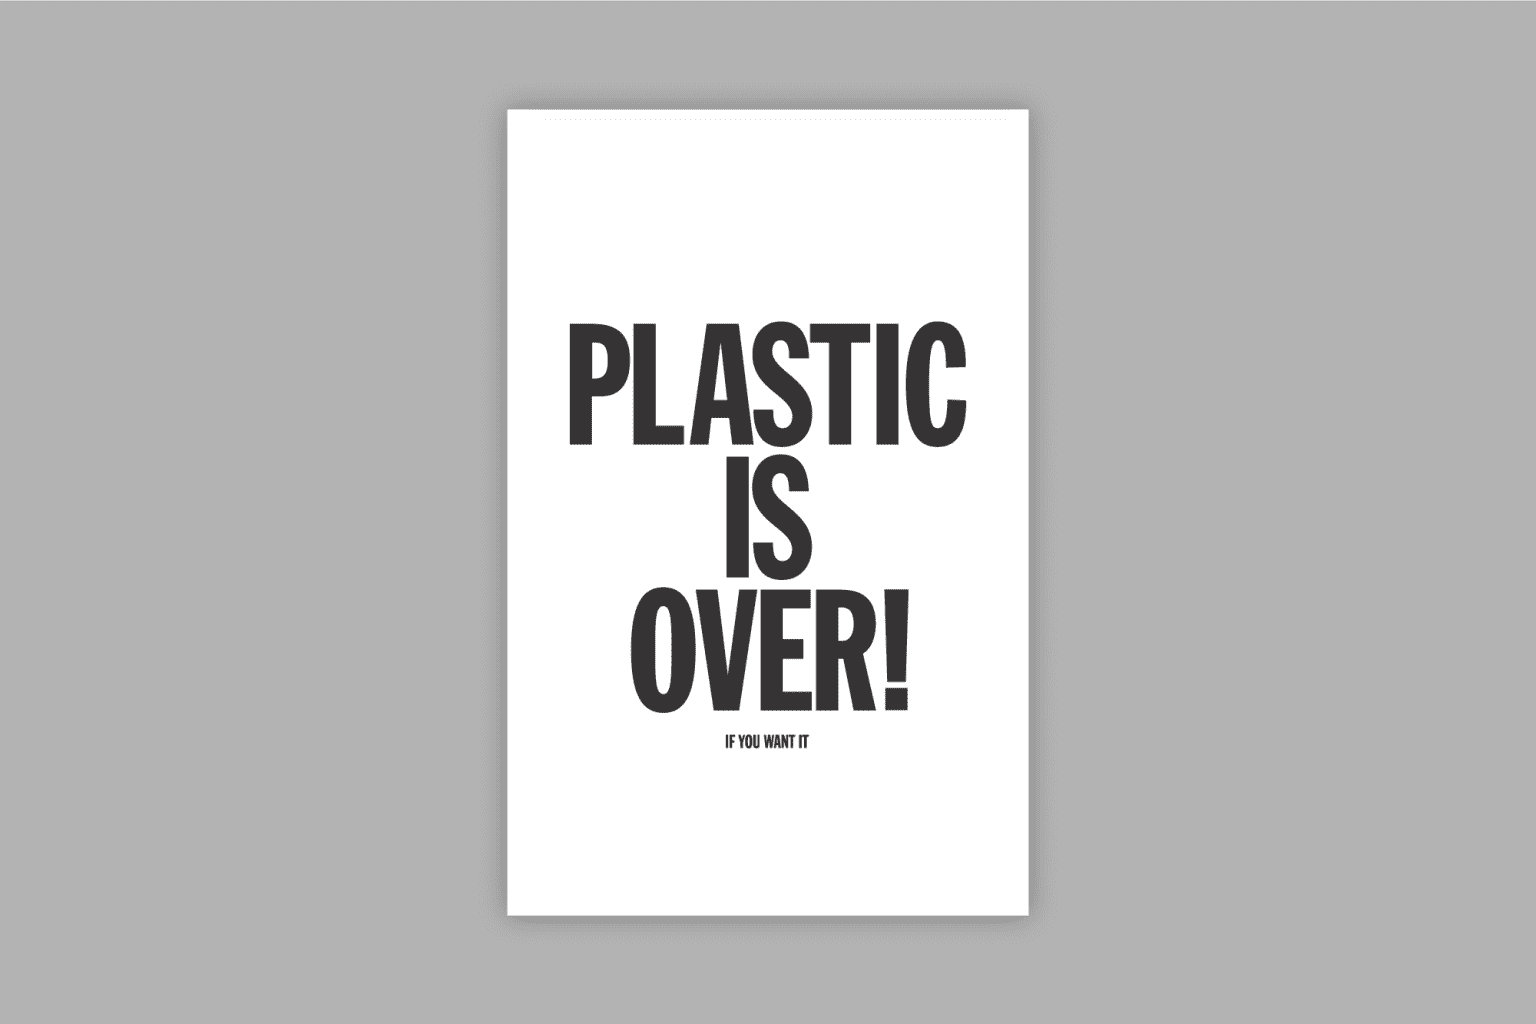 Plastic is Over!